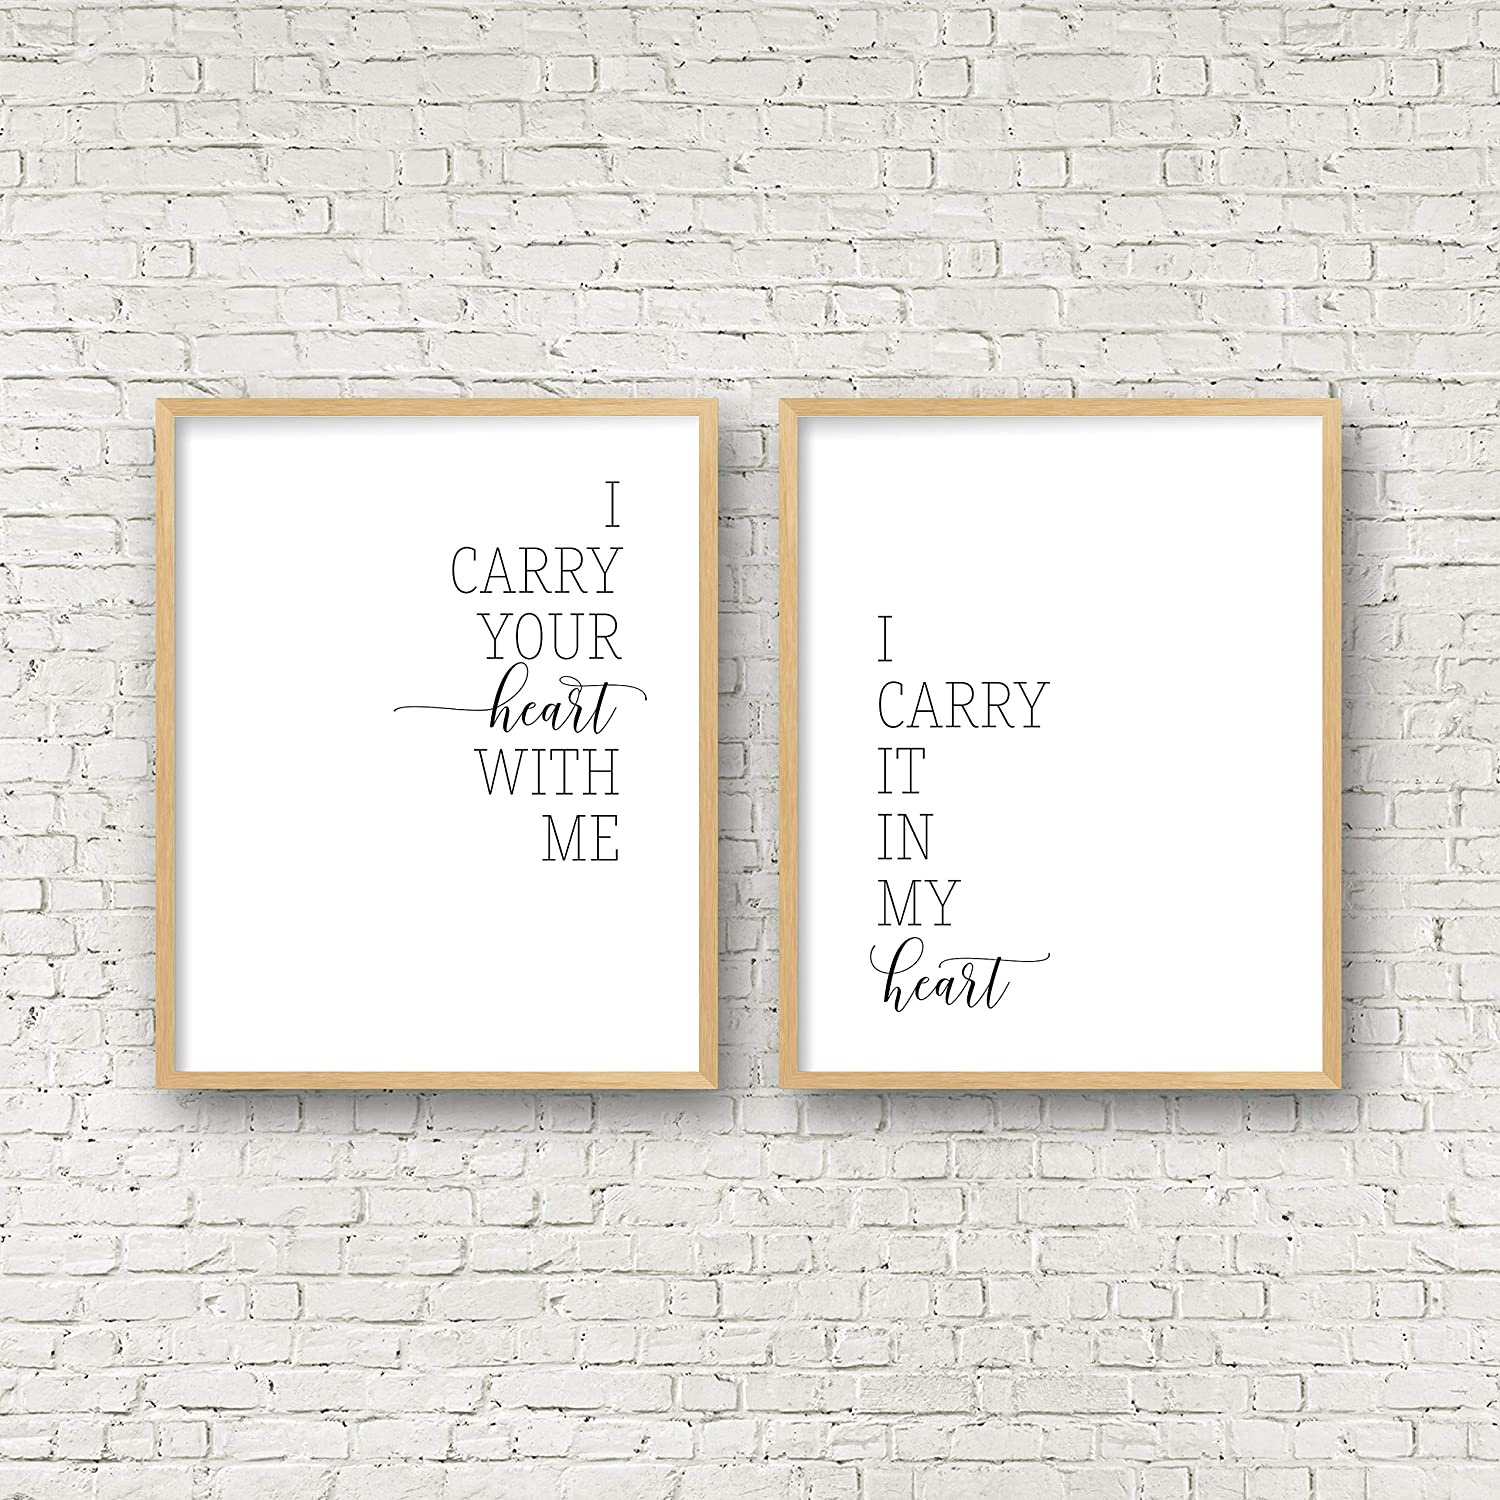 Amazoncom I Carry Your Heart With Me Print Ee Cummings